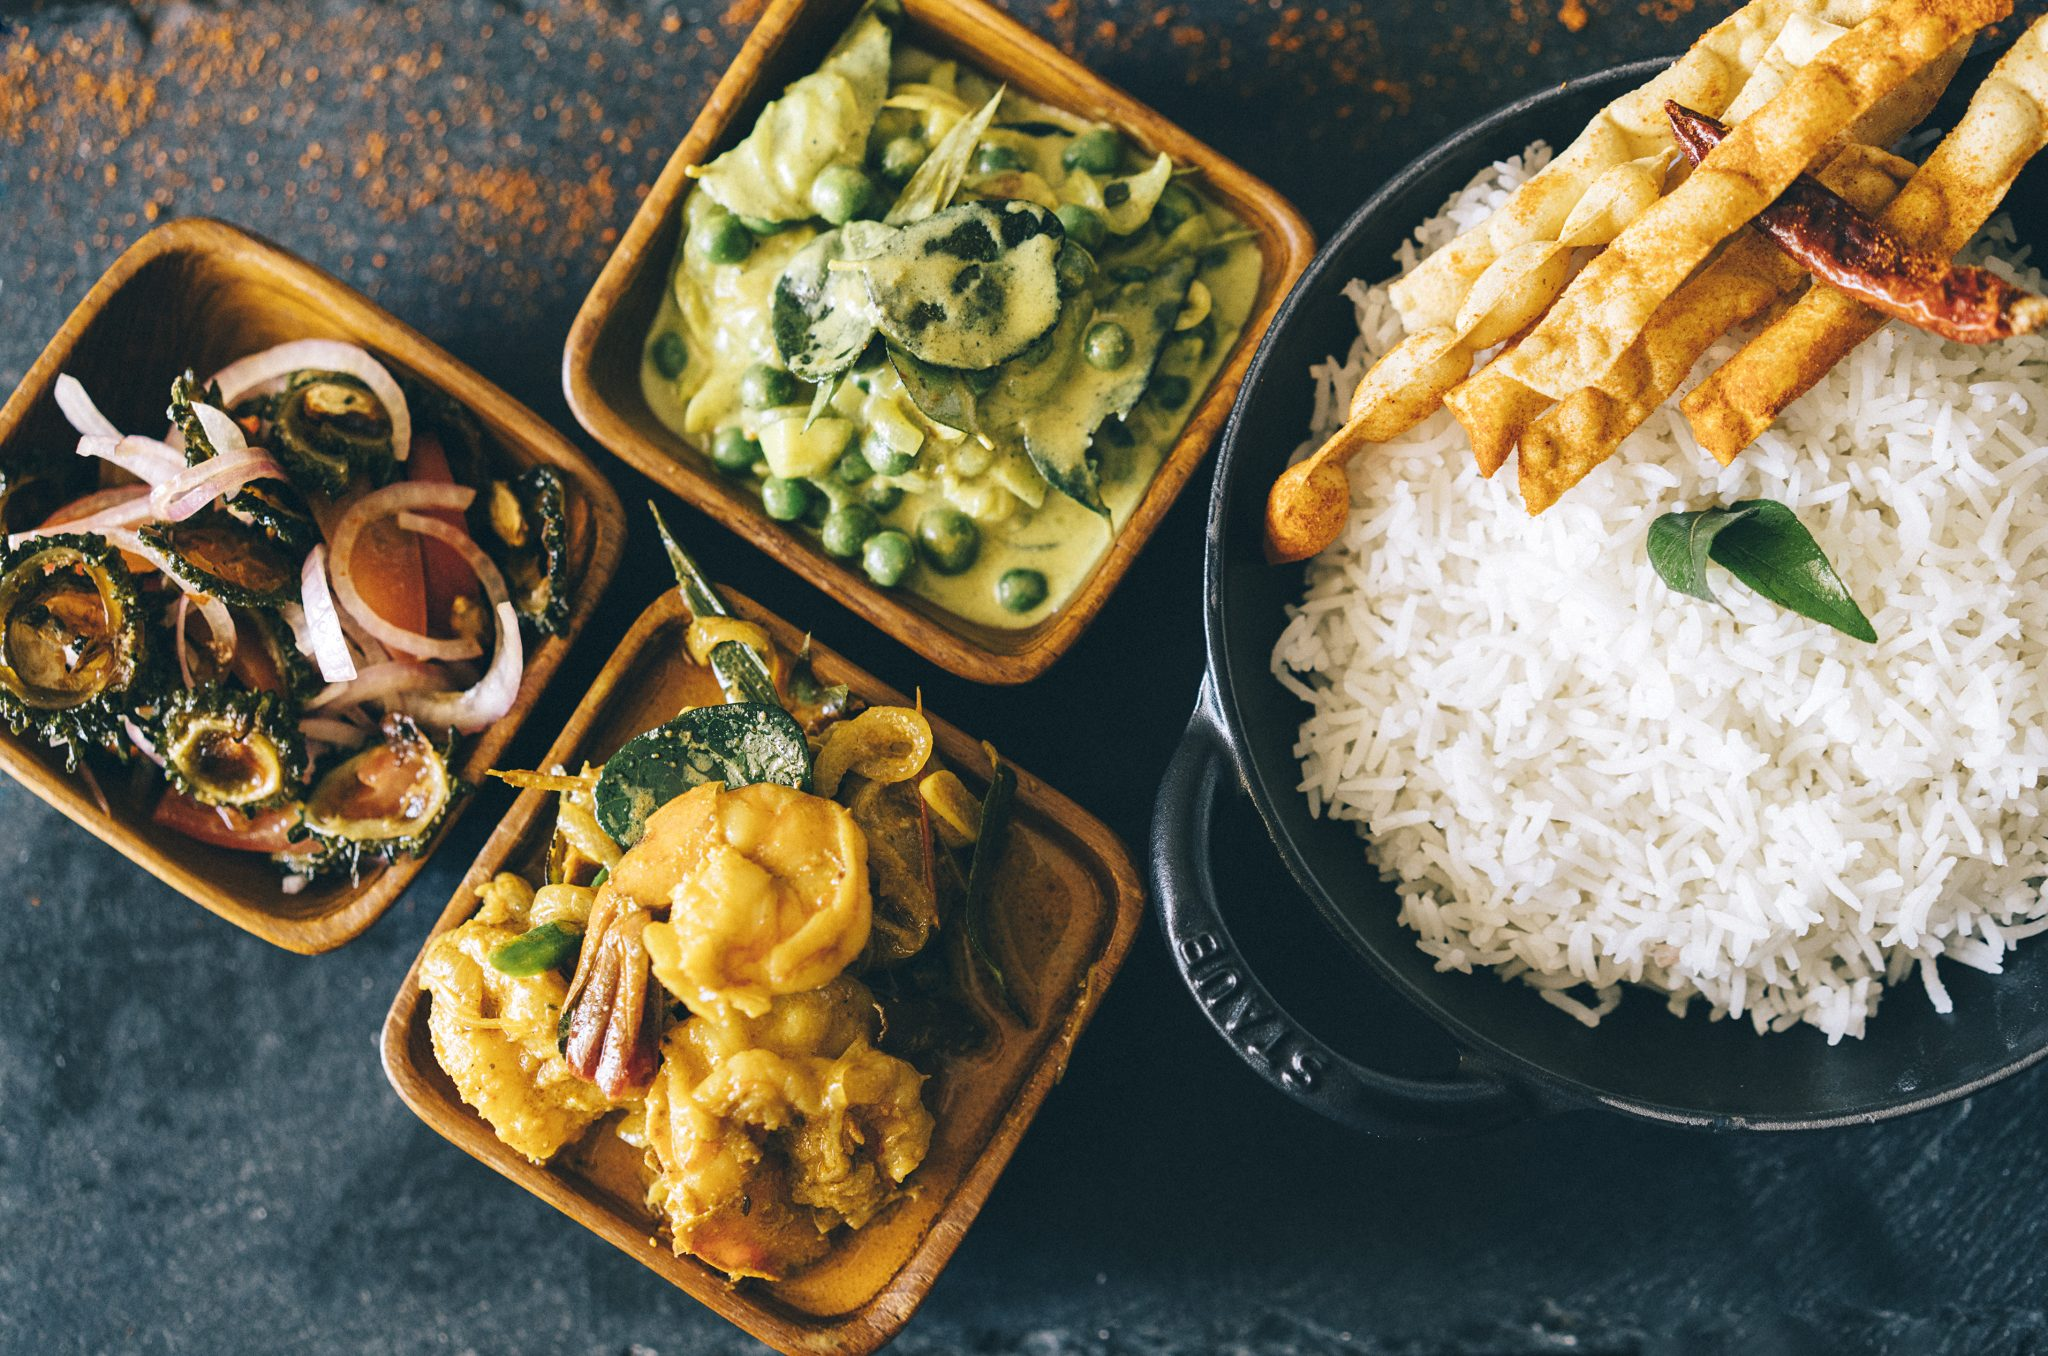 Anantara-Peace-Haven-Tangalle_Ayurveda-Cuisine-Curries